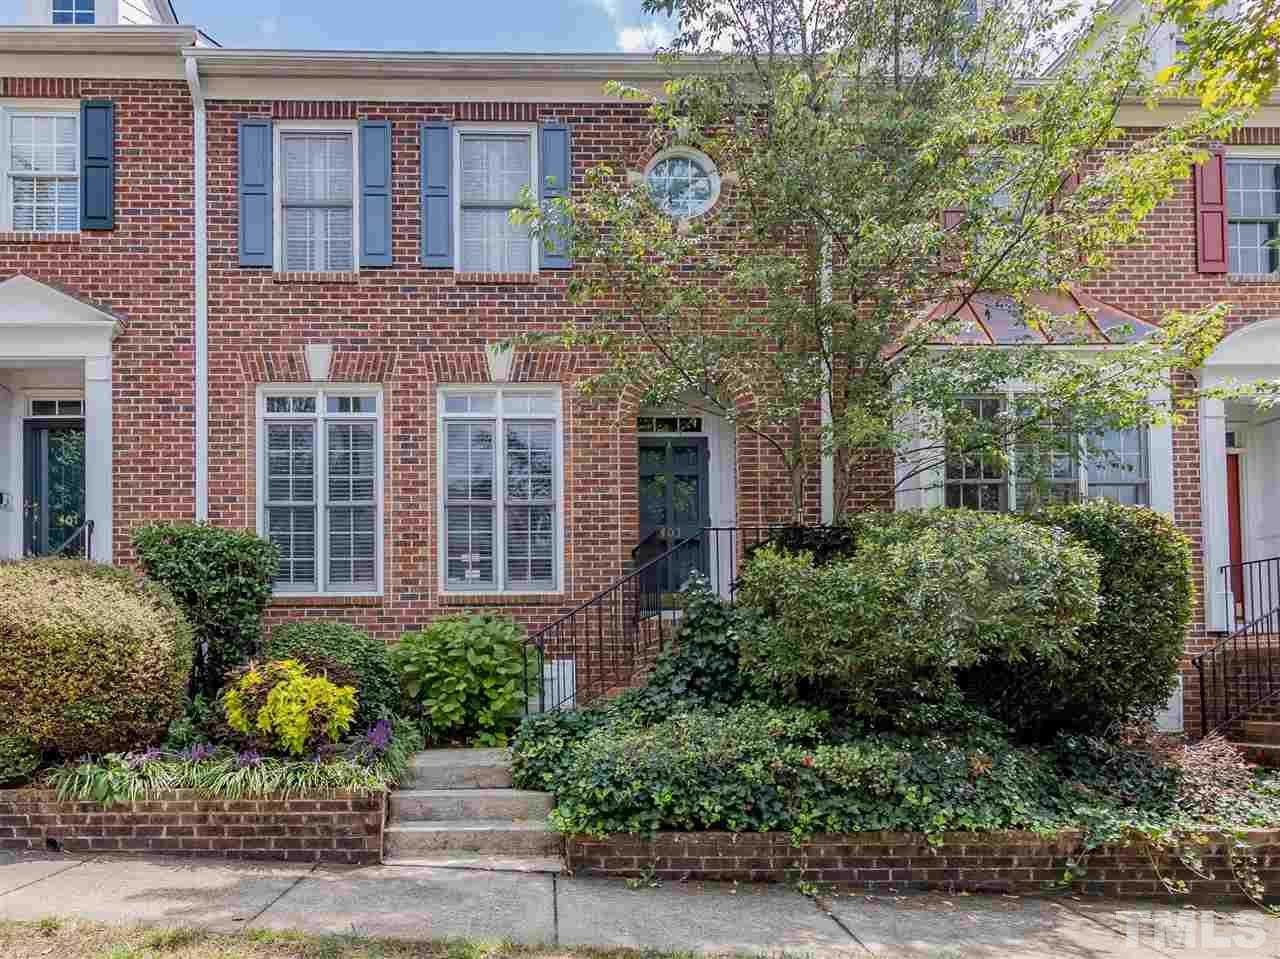 $395,000 - 3Br/3Ba -  for Sale in Southern Village, Chapel Hill